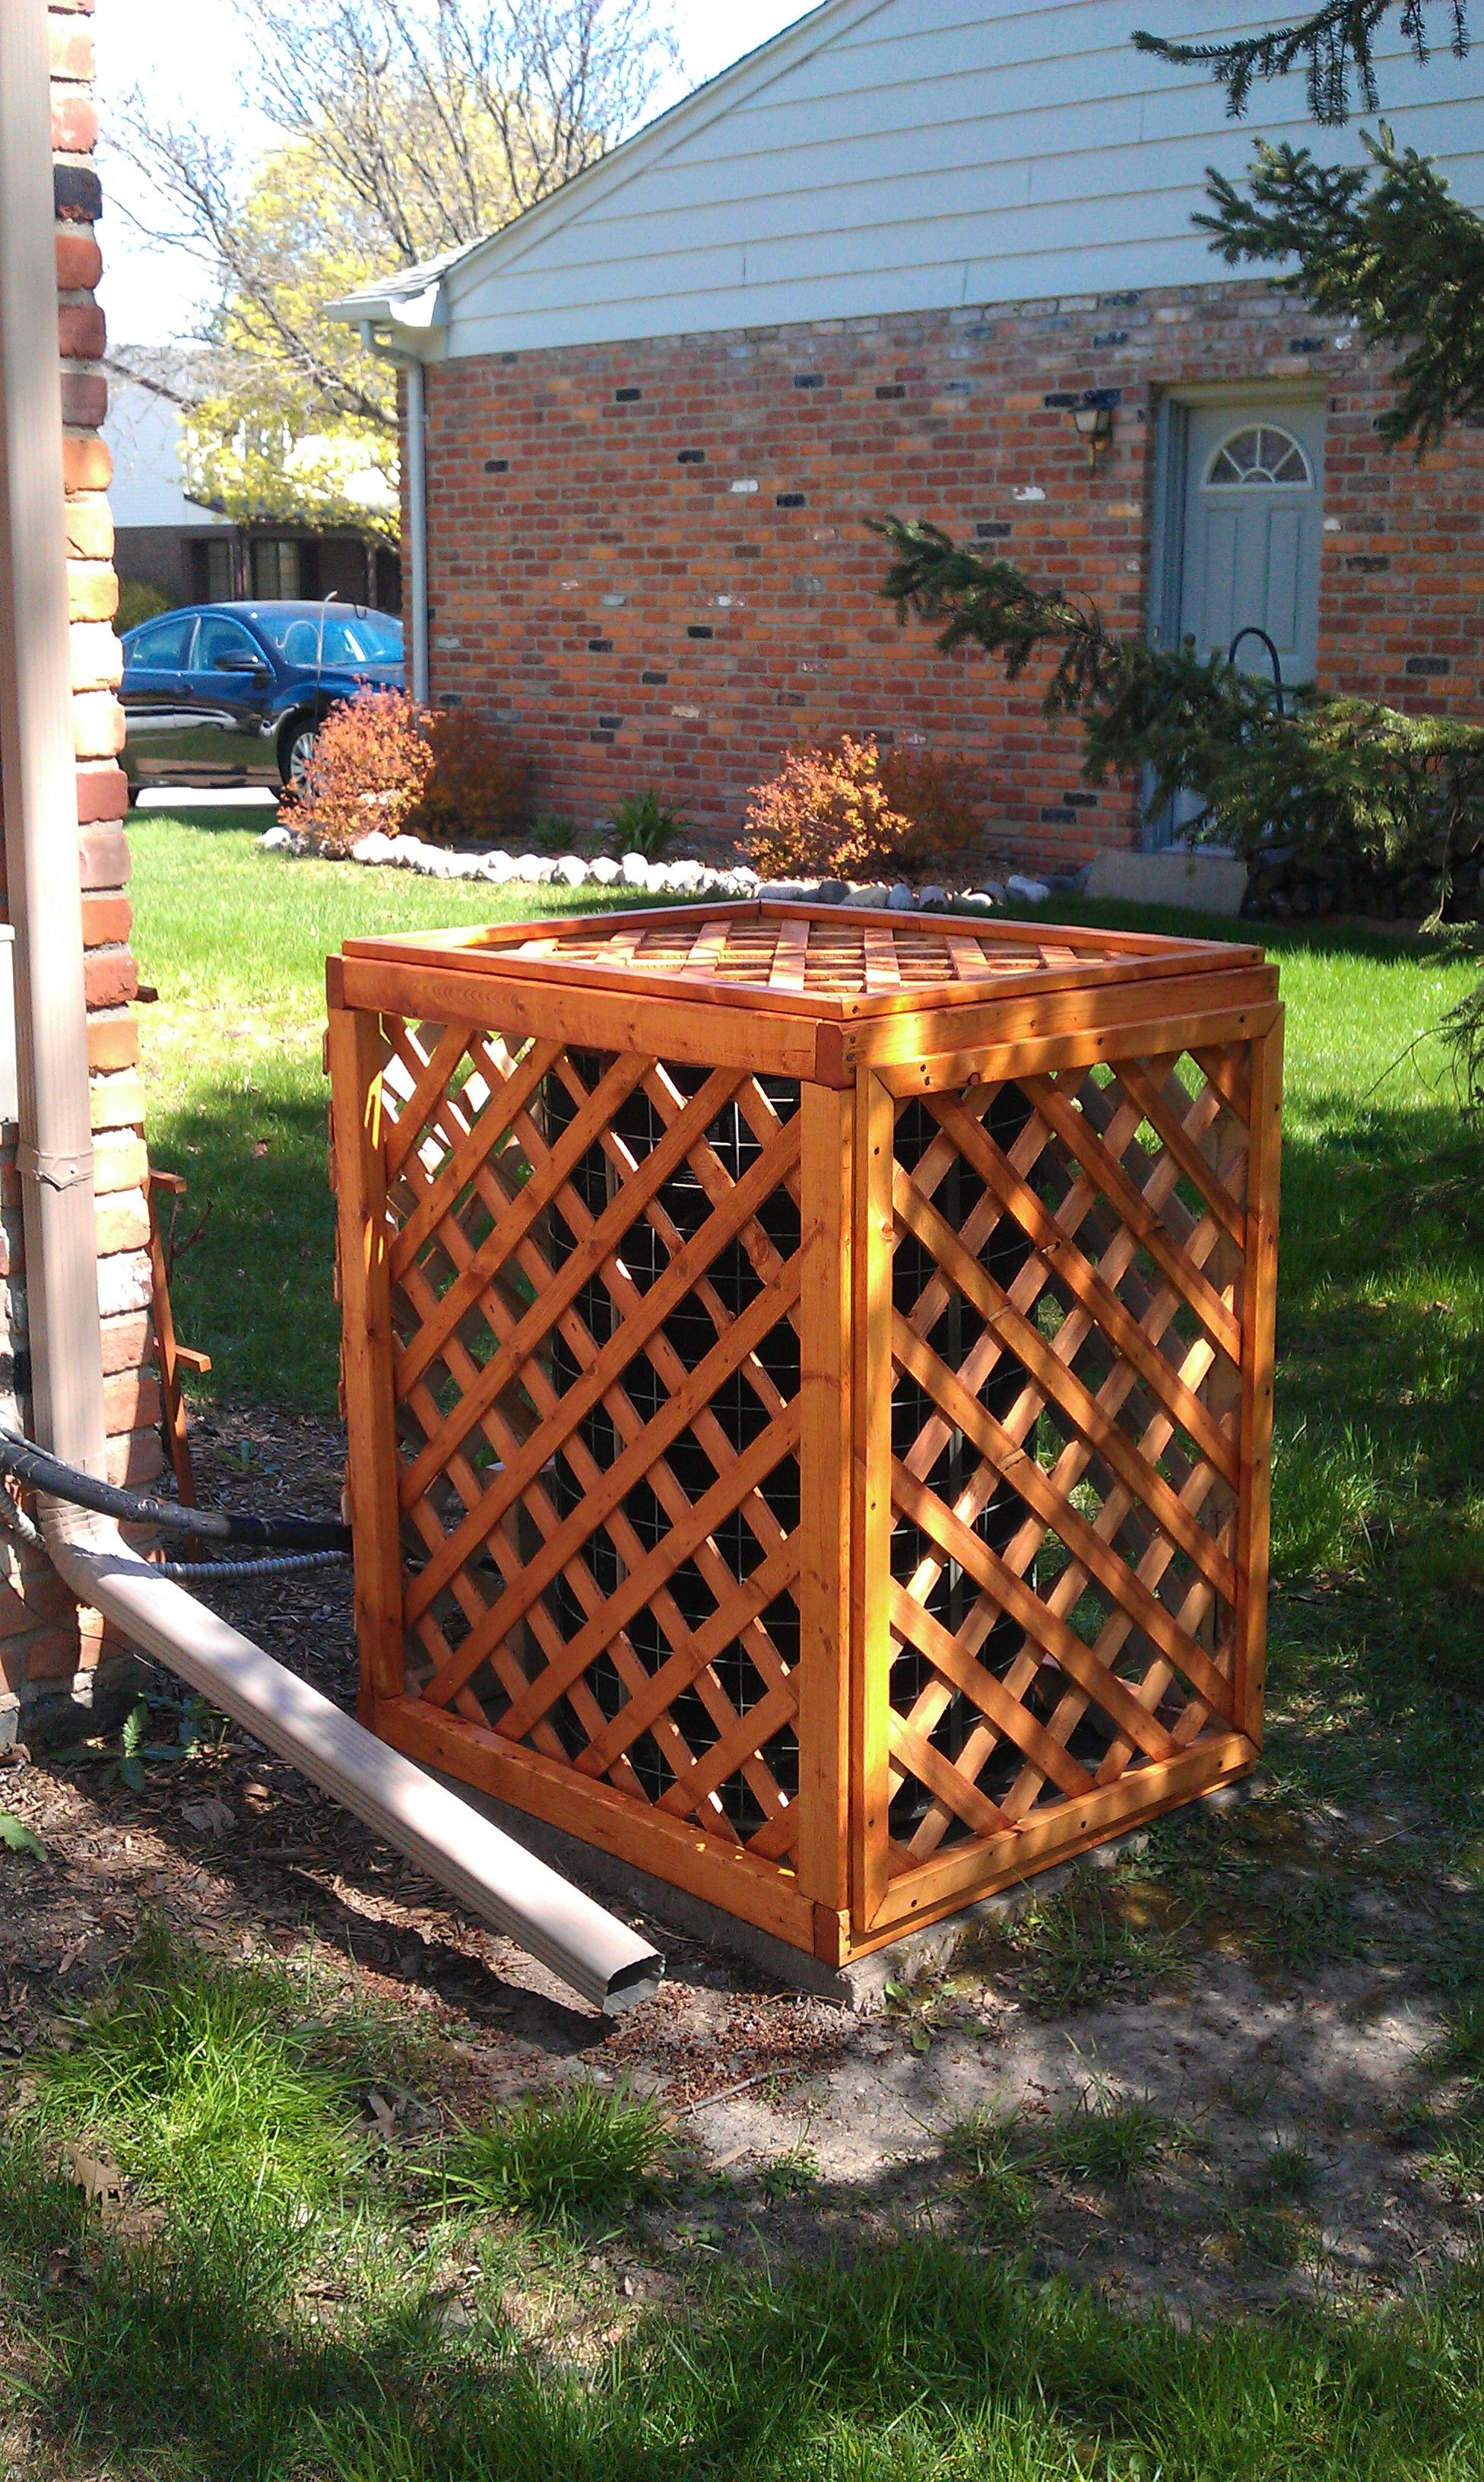 Awesome DIY projec! Just remember to keep the lattice free